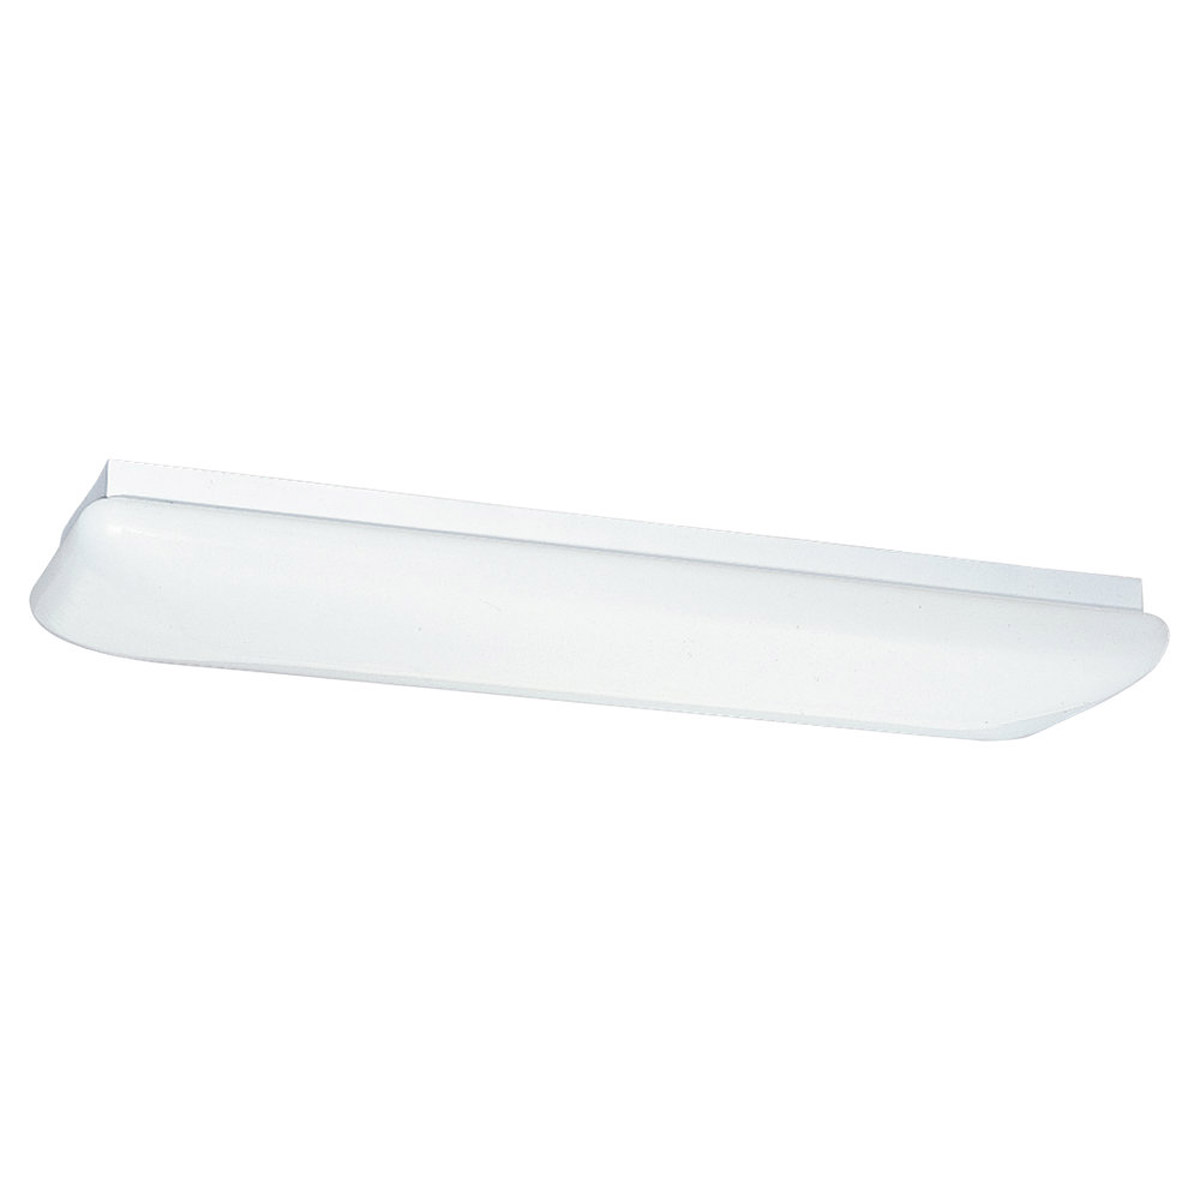 Sea Gull Lighting Signature Fluorescent Trim Only in White Plastic 5912-68